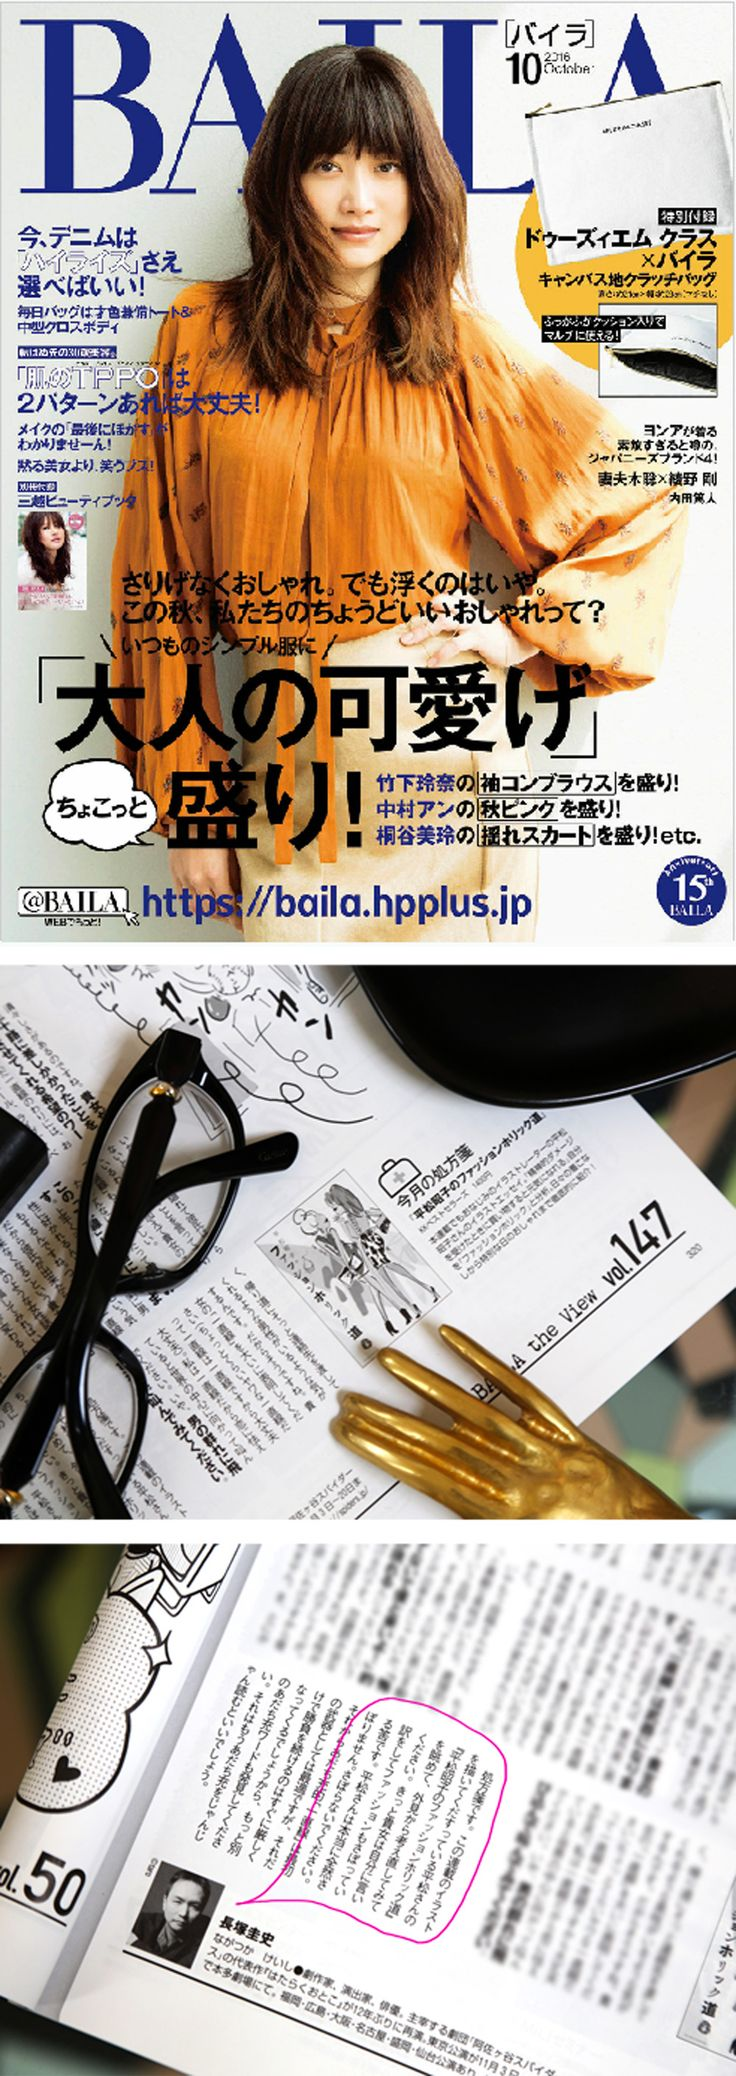 Mr. Keishi Nagatsuka has been giving advice and prescription to readers of BAILA about their problems. This month, the prescription is my book, 'Fashion Holic Way'!BAILA 2016 DECEMBER 長塚圭史さんの連載ページの処方箋にしていただきました。